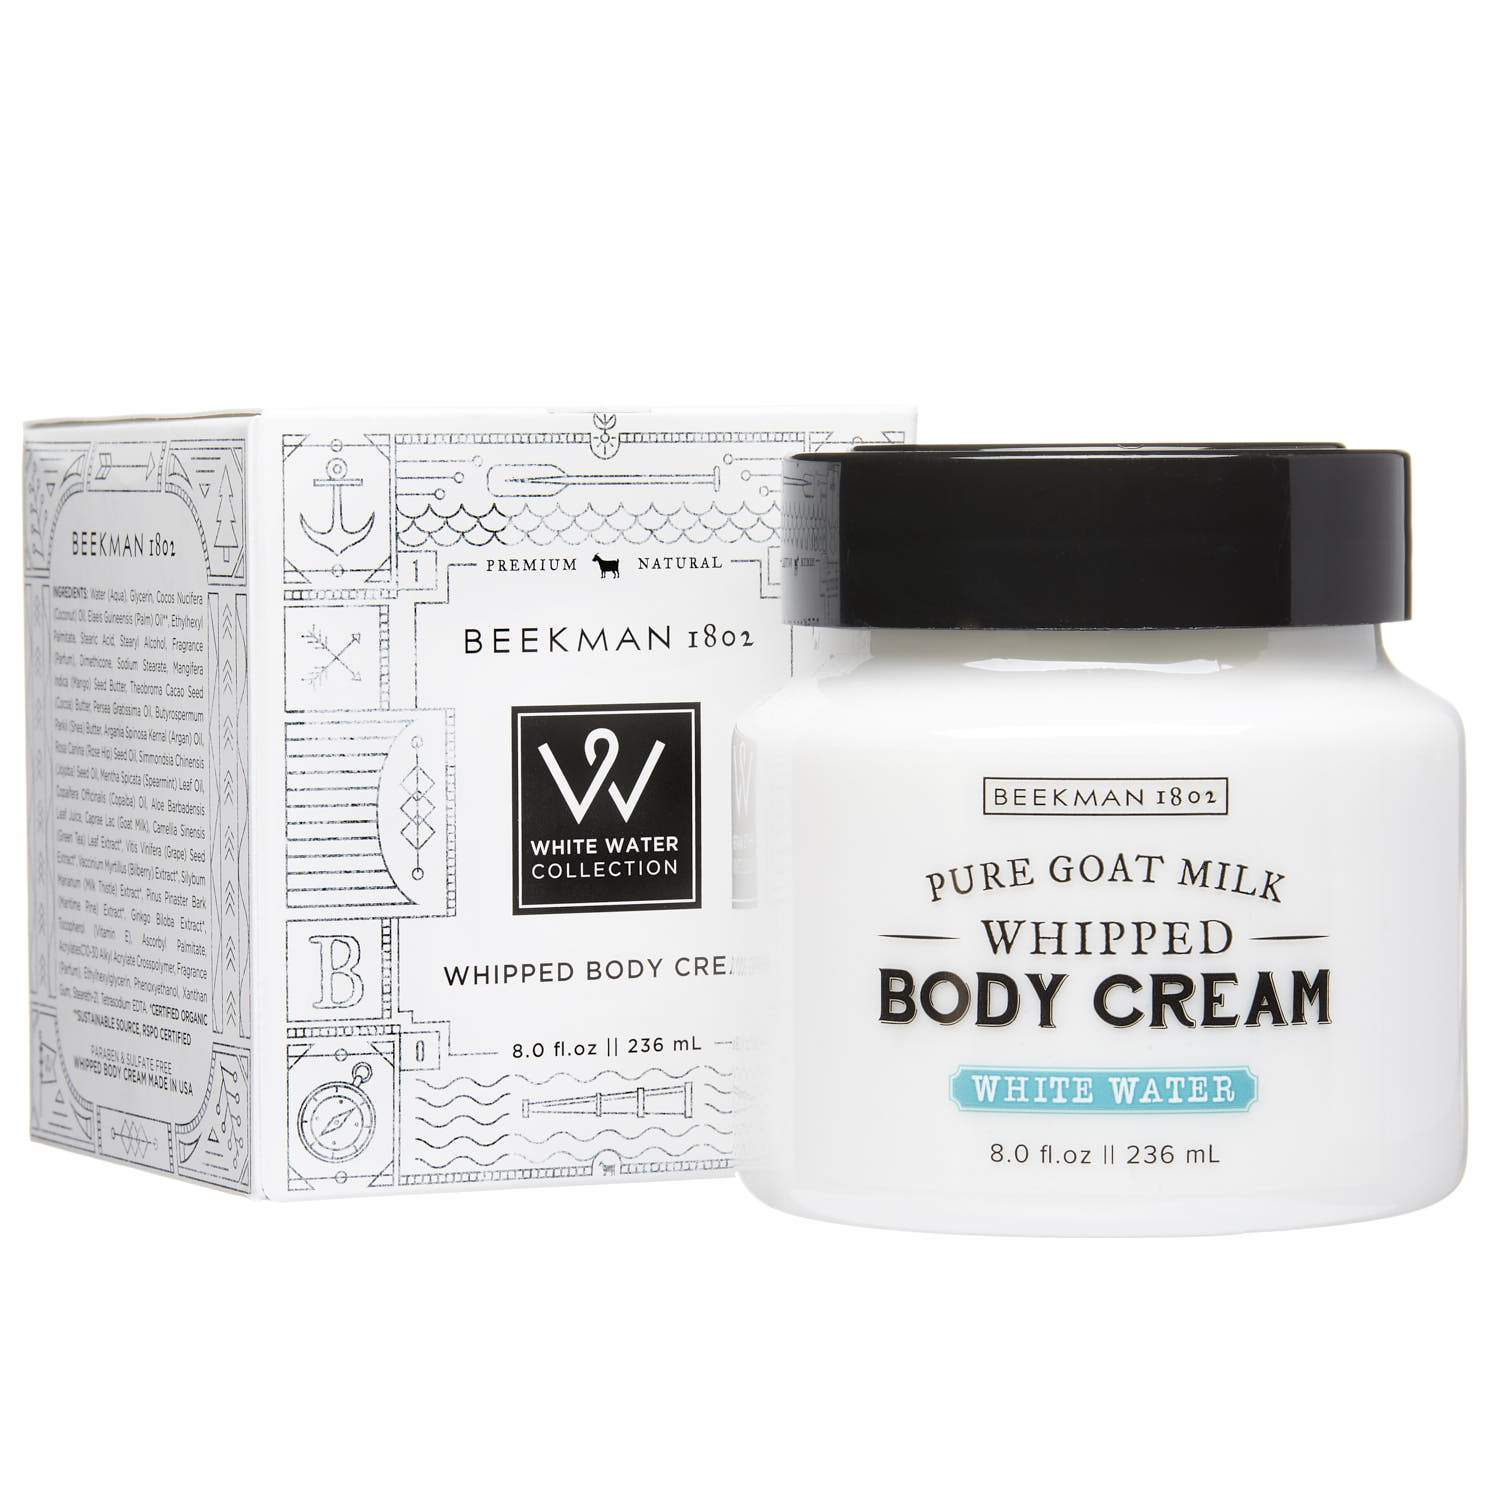 Beekman 1802 White Water Whipped Body Cream